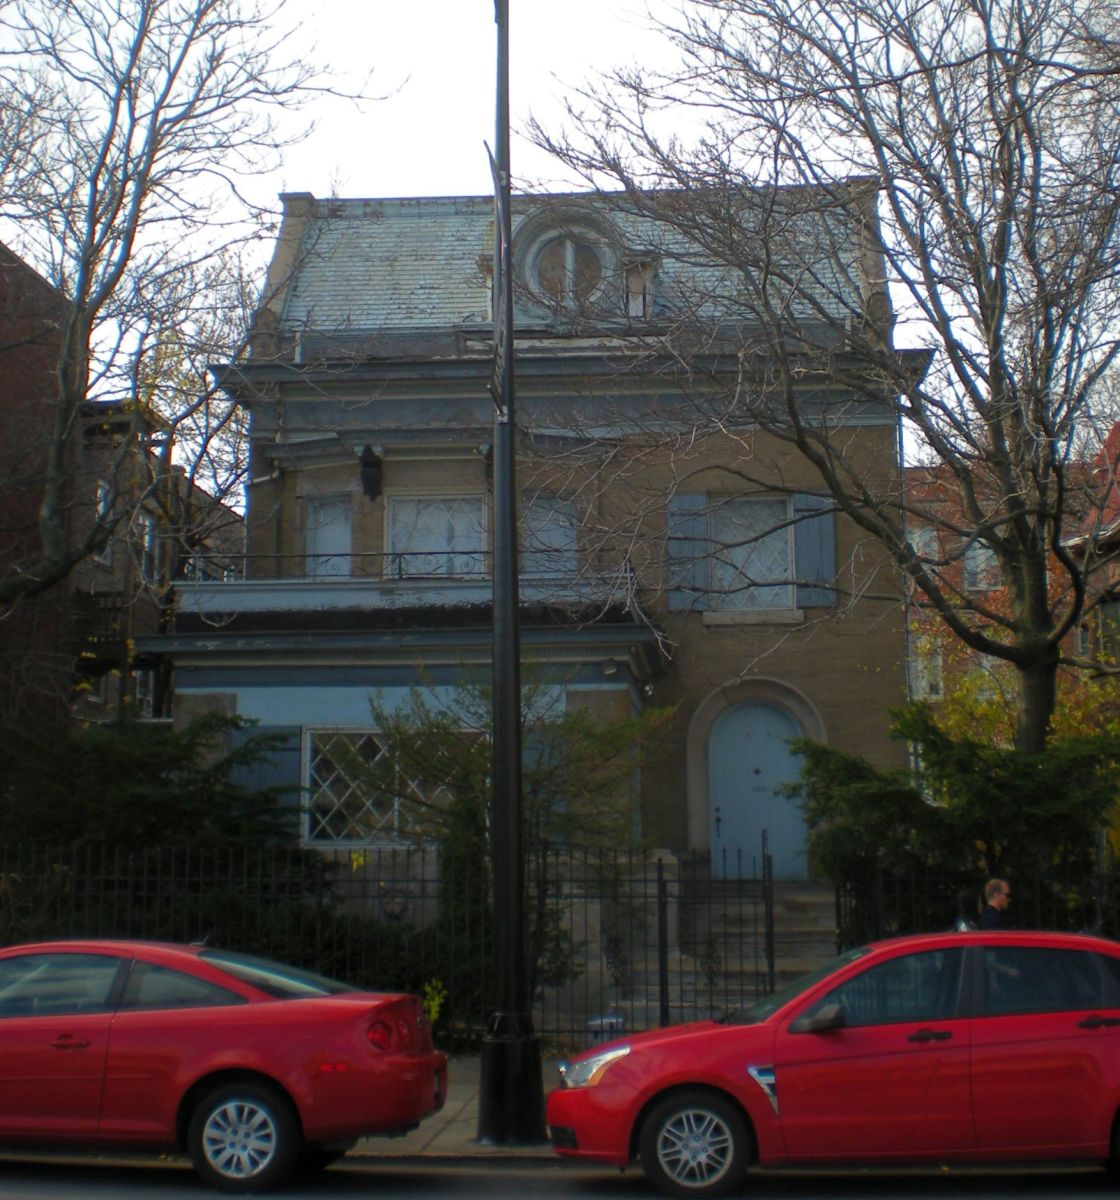 The Julius H. Holsher House (1902) at 4506 N. Sheridan Road in the Uptown neighborhood.